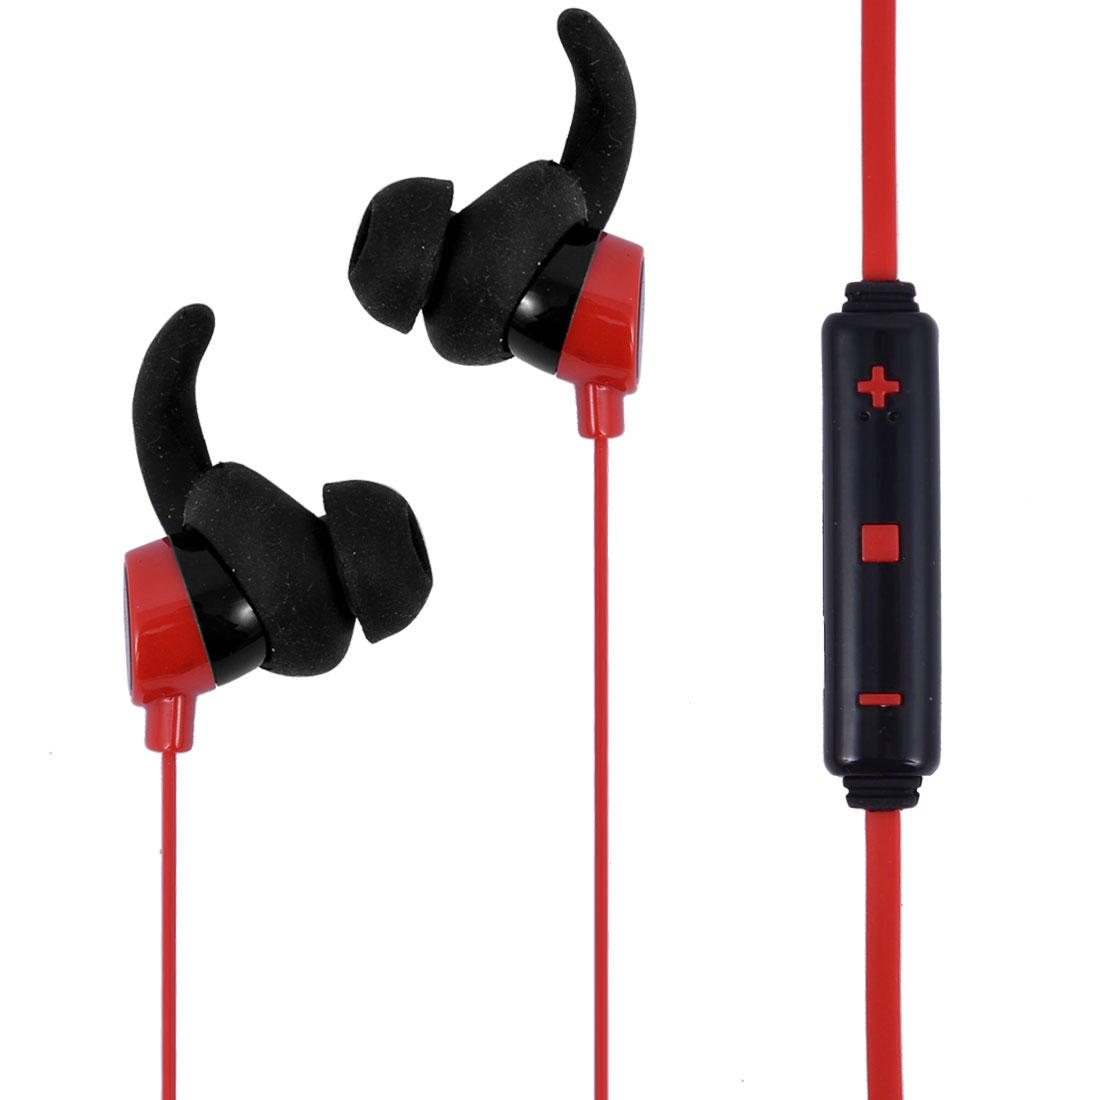 bluetooth 4.1 Wireless Headphone In-ear Earbuds Headset Mic Red for Sport